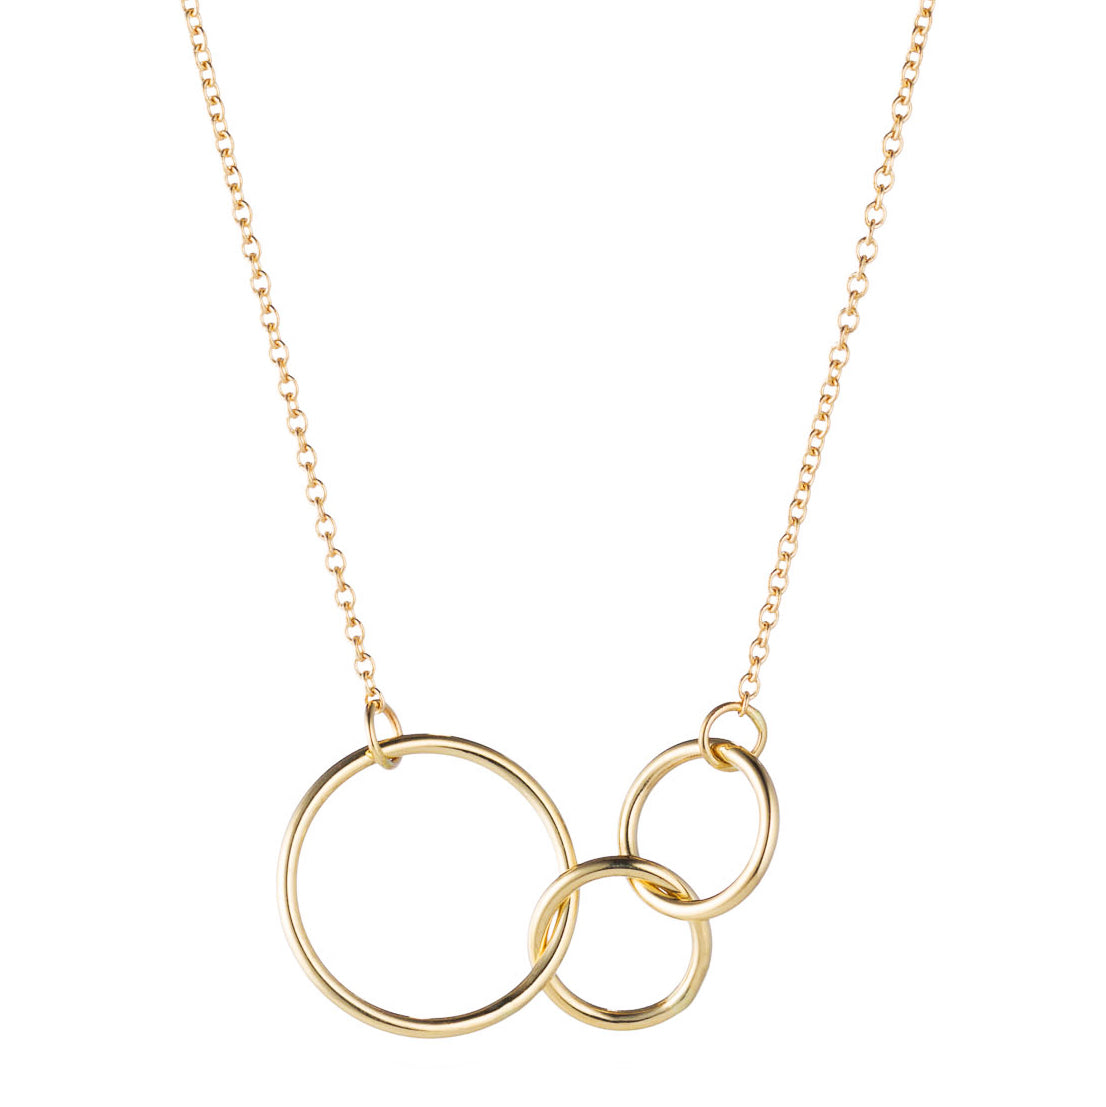 14K Gold Interlocking 3 Rings Necklace by Valerie Madison Jewelry mother and two children